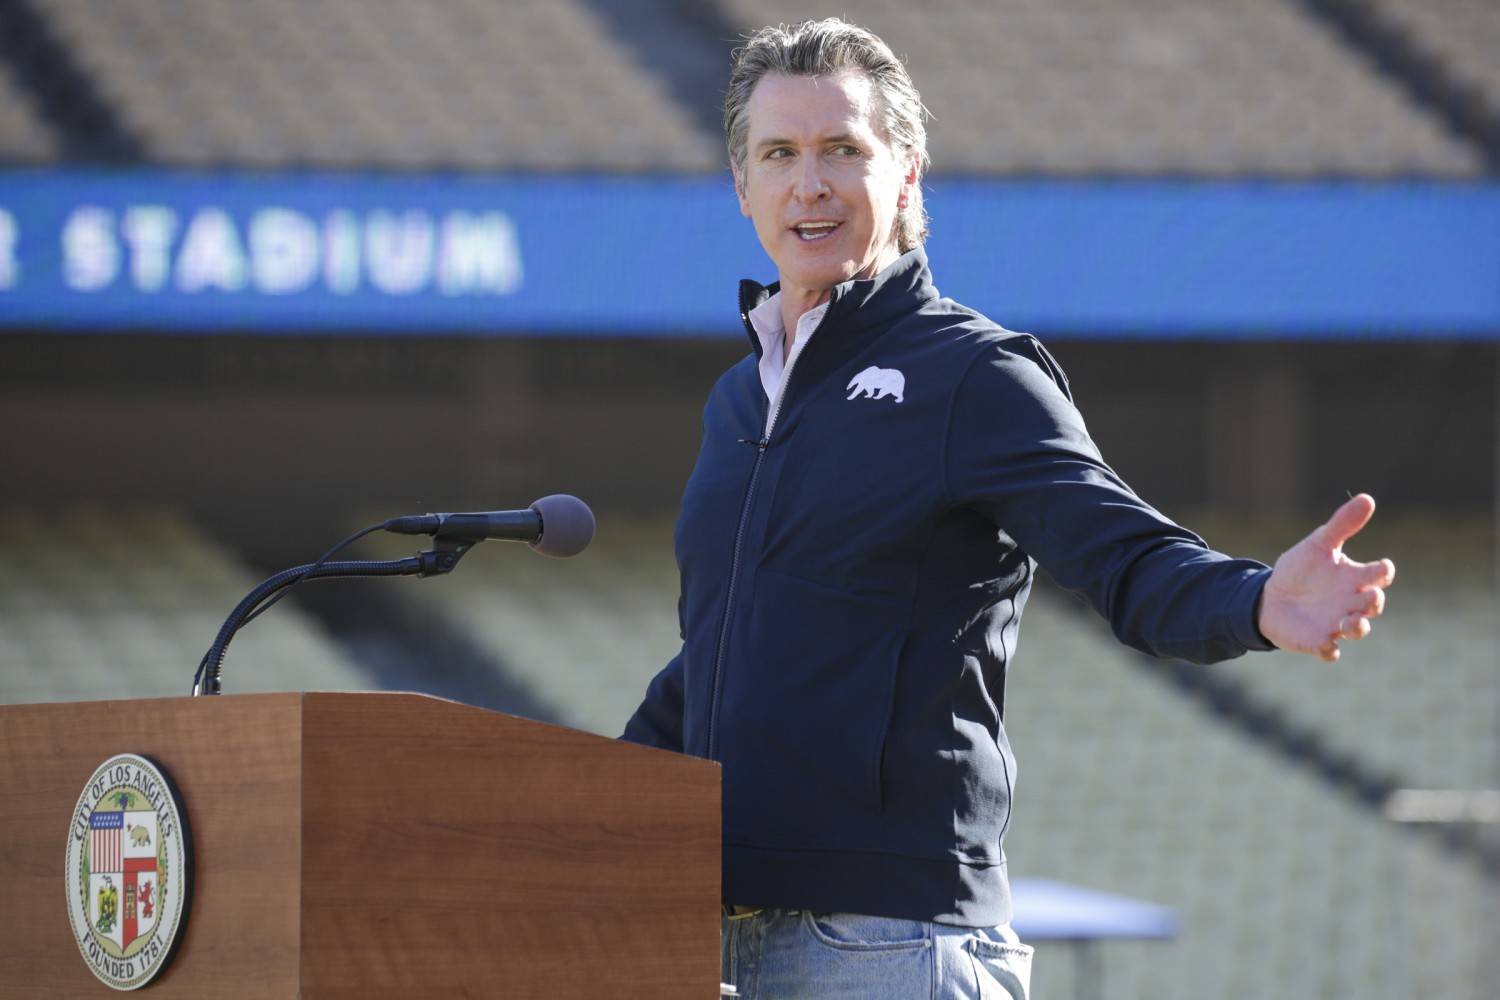 California Gov. Gavin Newsom will deliver the State of the State at Dodger Stadium Tuesday evening. (Irfan Khan/Los Angeles Times/TNS)